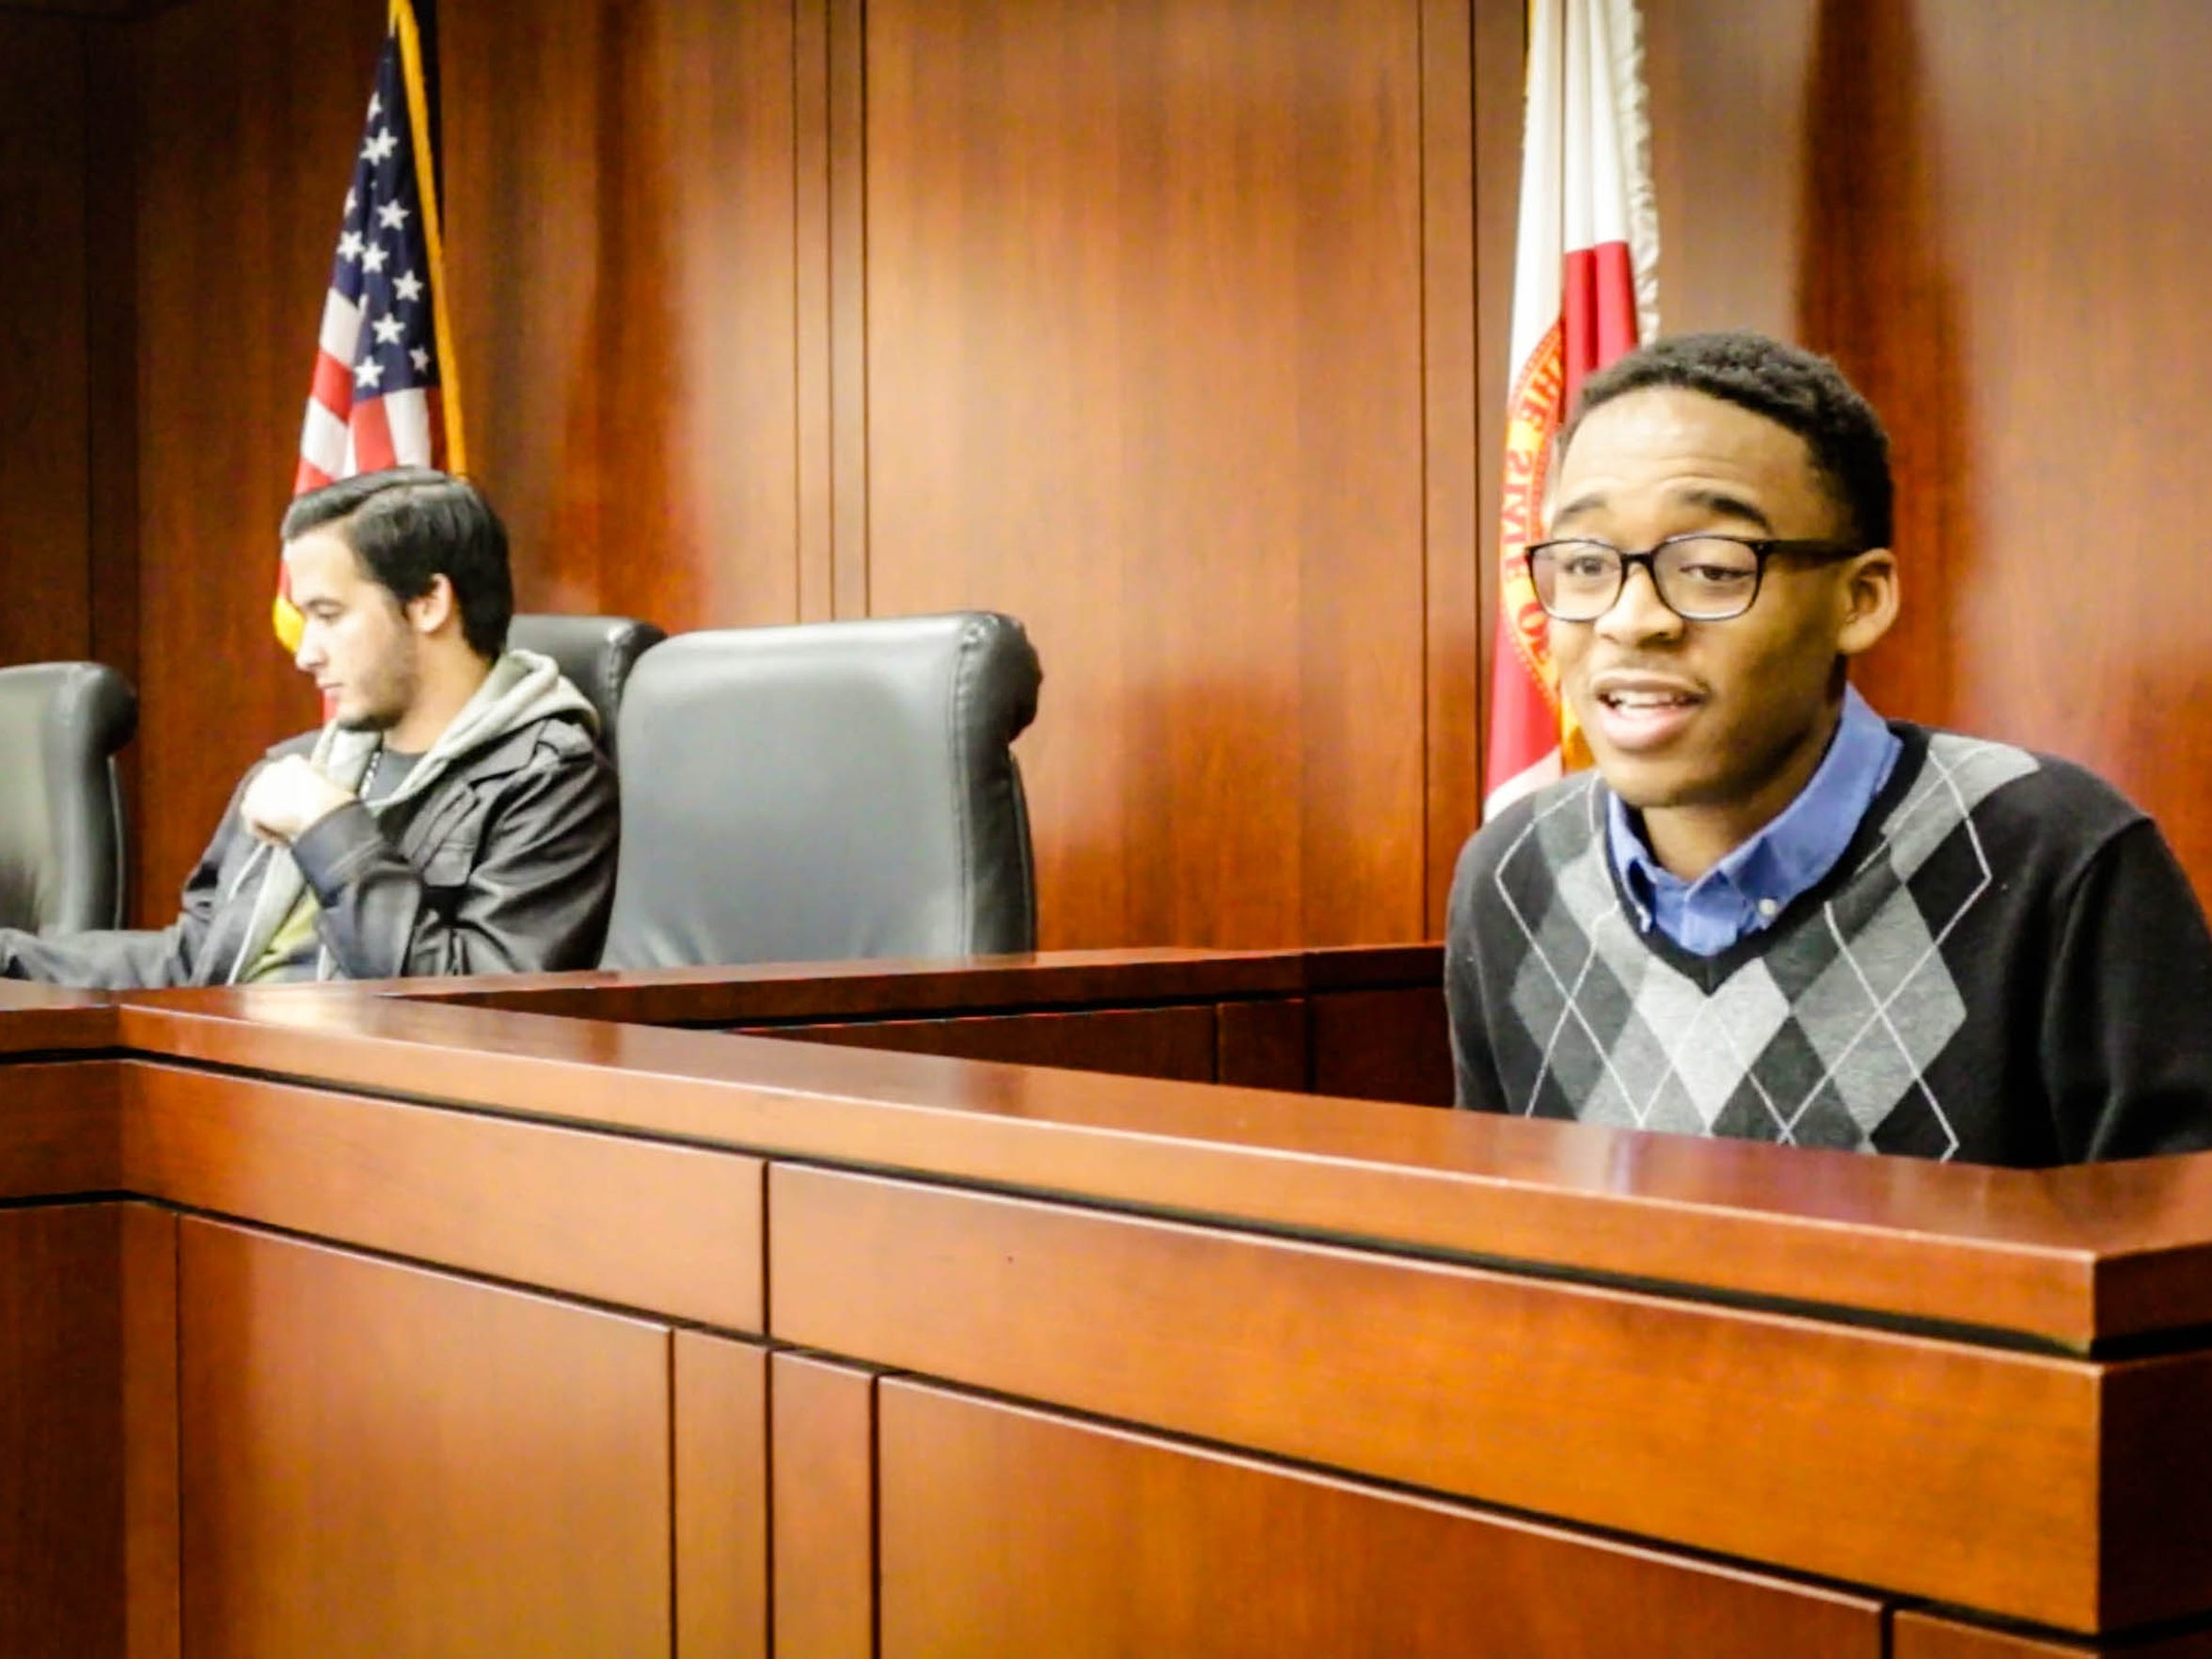 The plantiff in the case takes the stand in the Law School's mock trial on December 2nd, 2016.